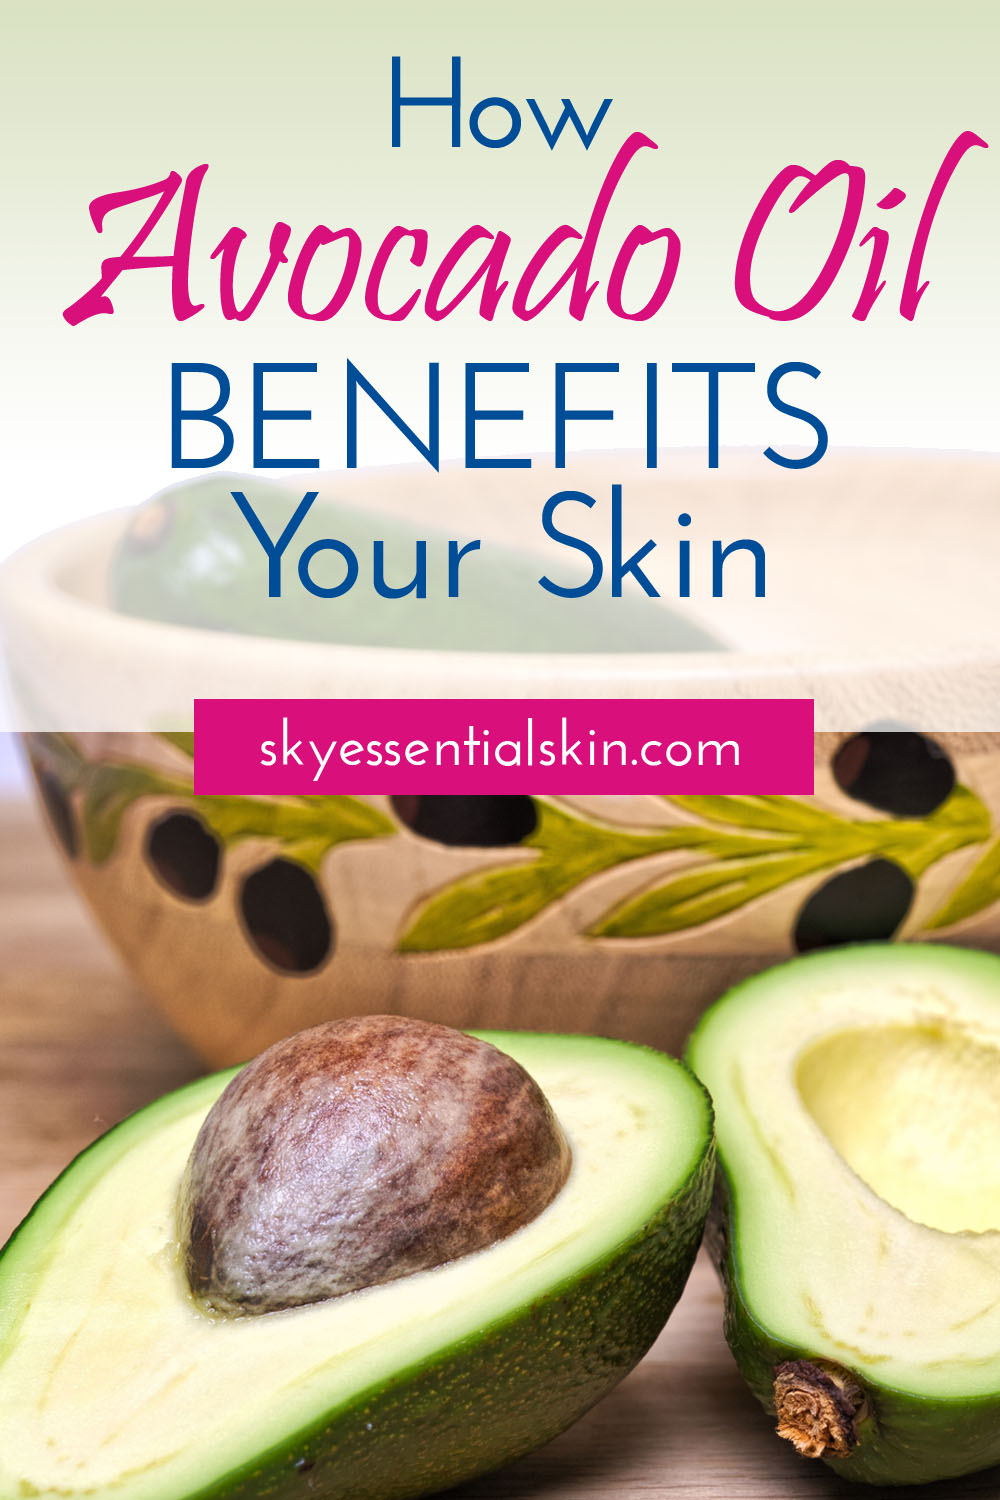 How Avocado Oil Benefits Your Skin - Just like olive oil, avocado oil is a great antioxidant, extremely potent and contains Vitamin's A, B, D and E. Learn what this oil can do for your skin. #avocadooil #avocado #skincare #antiaging #dryskin #eczema #psoriasis #sensitiveskin